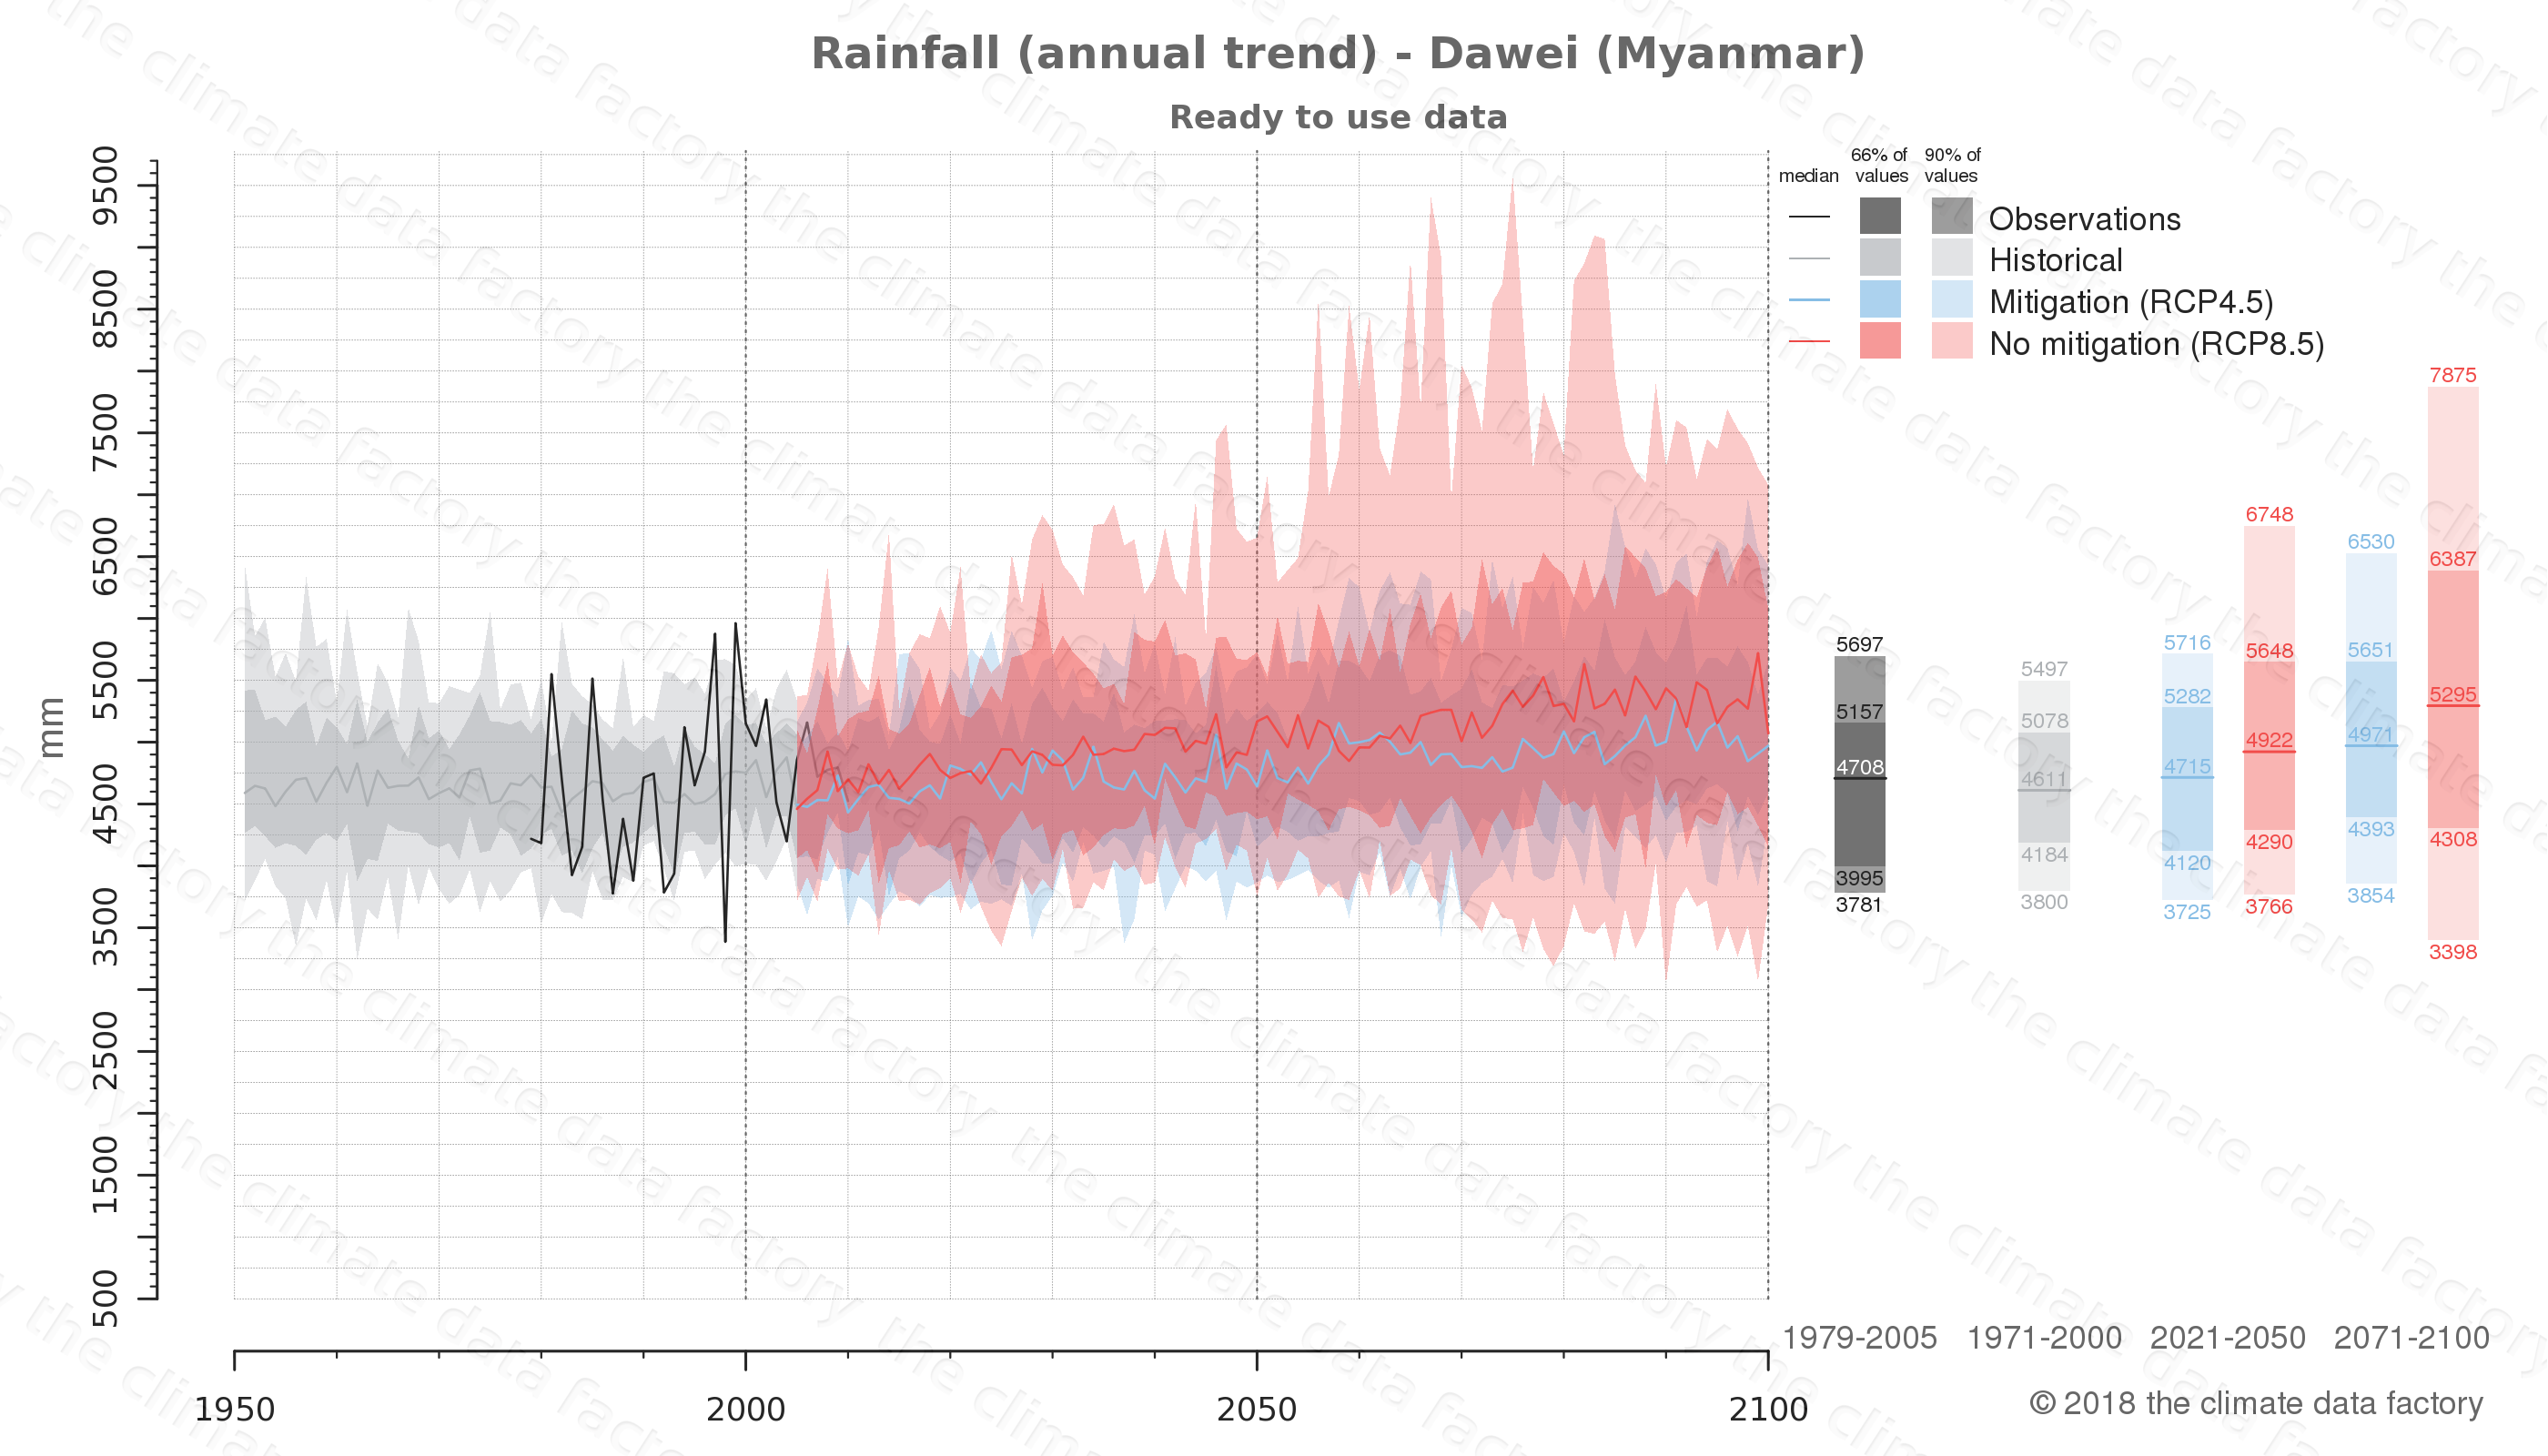 climate change data policy adaptation climate graph city data rainfall dawei myanmar